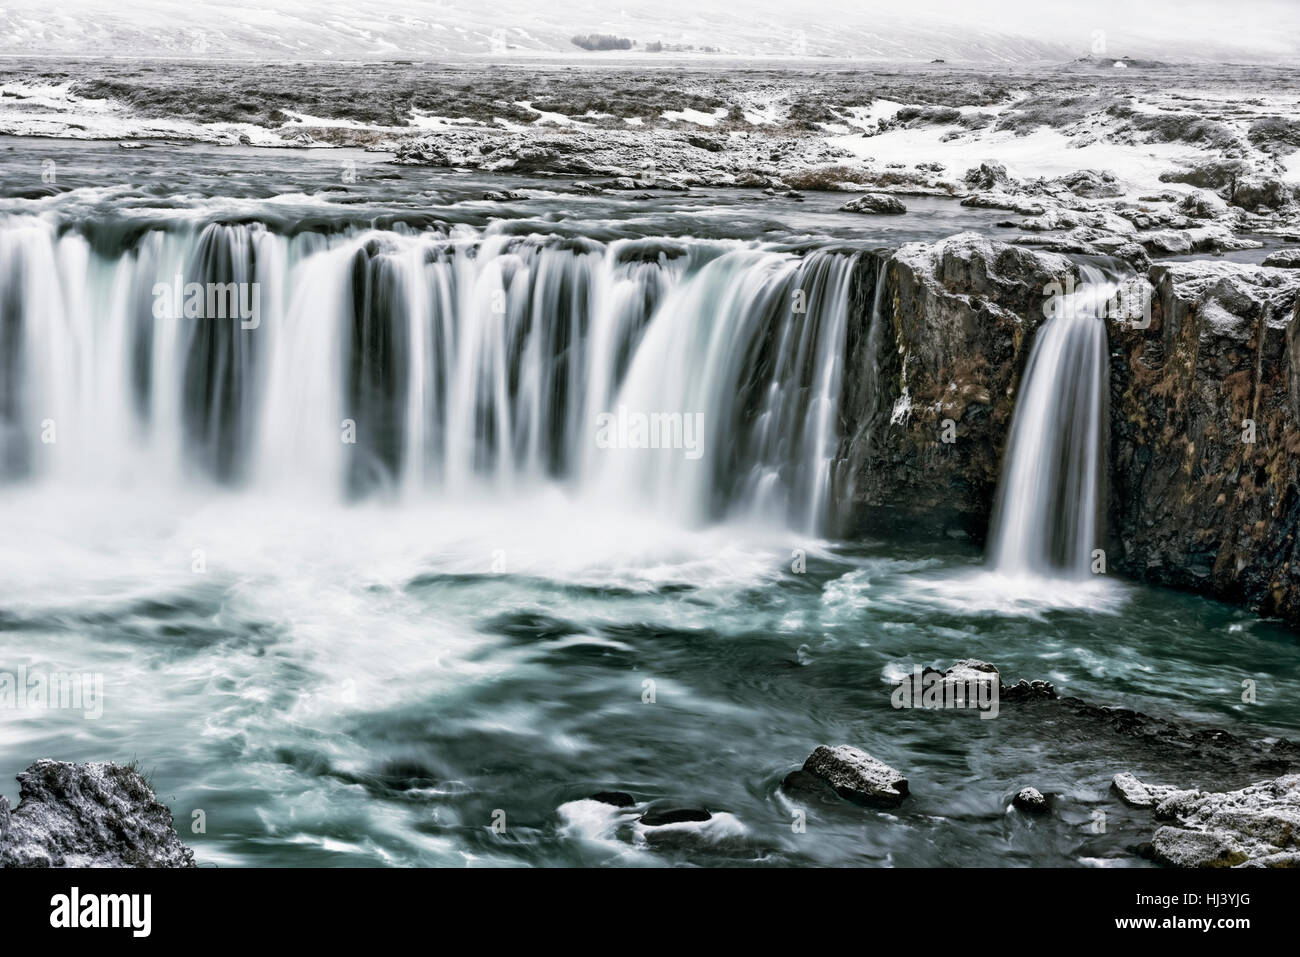 Godafoss waterfall in Iceland - Stock Image